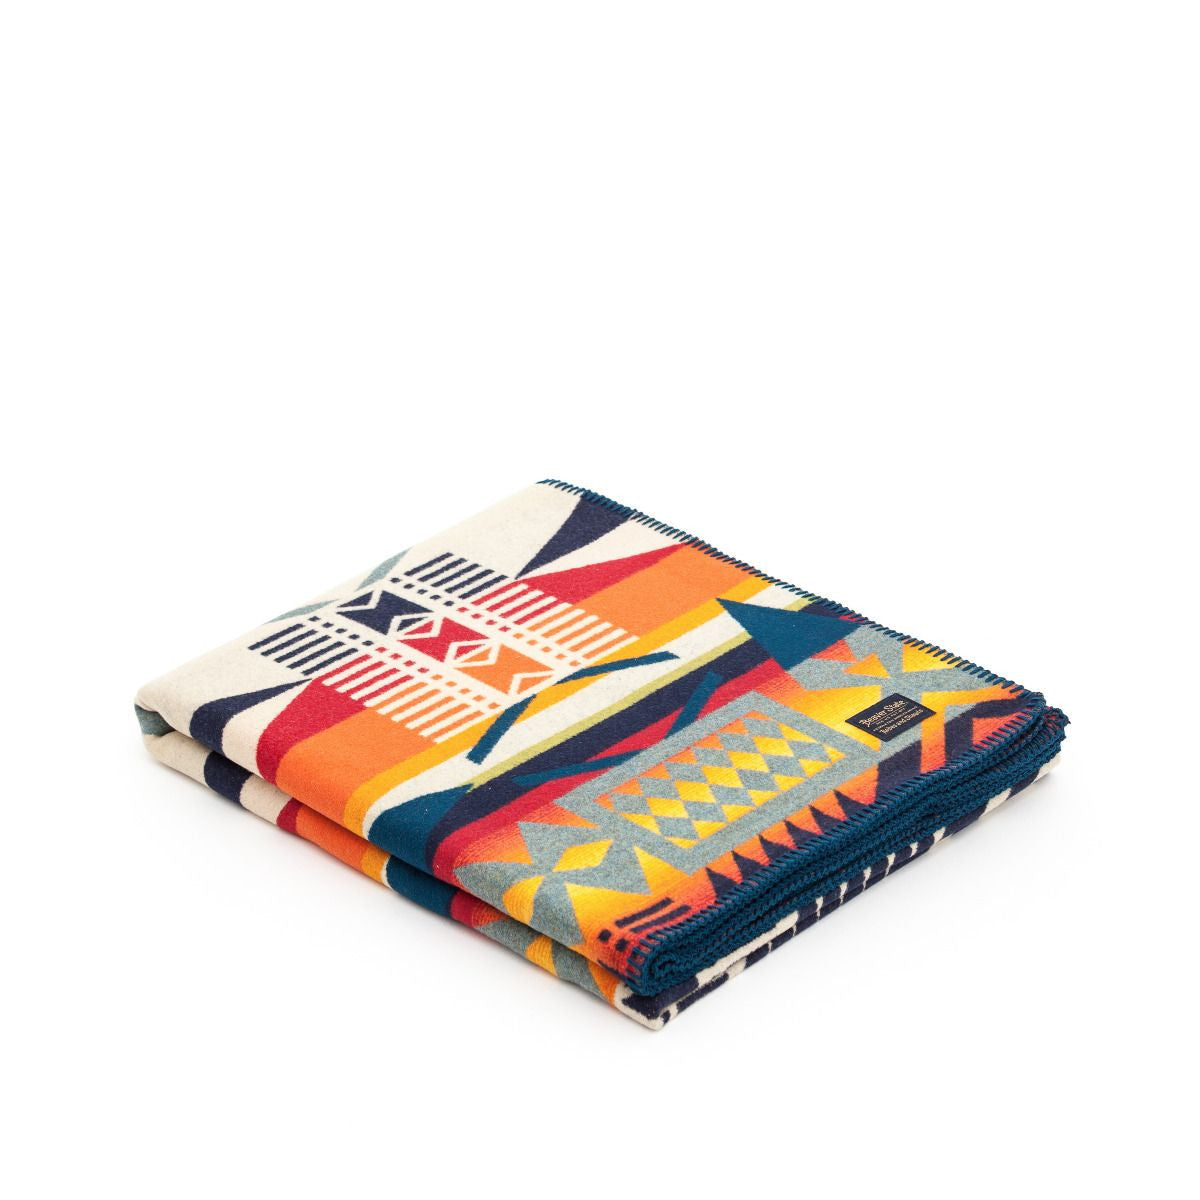 Pendleton Fire Legend Blanket